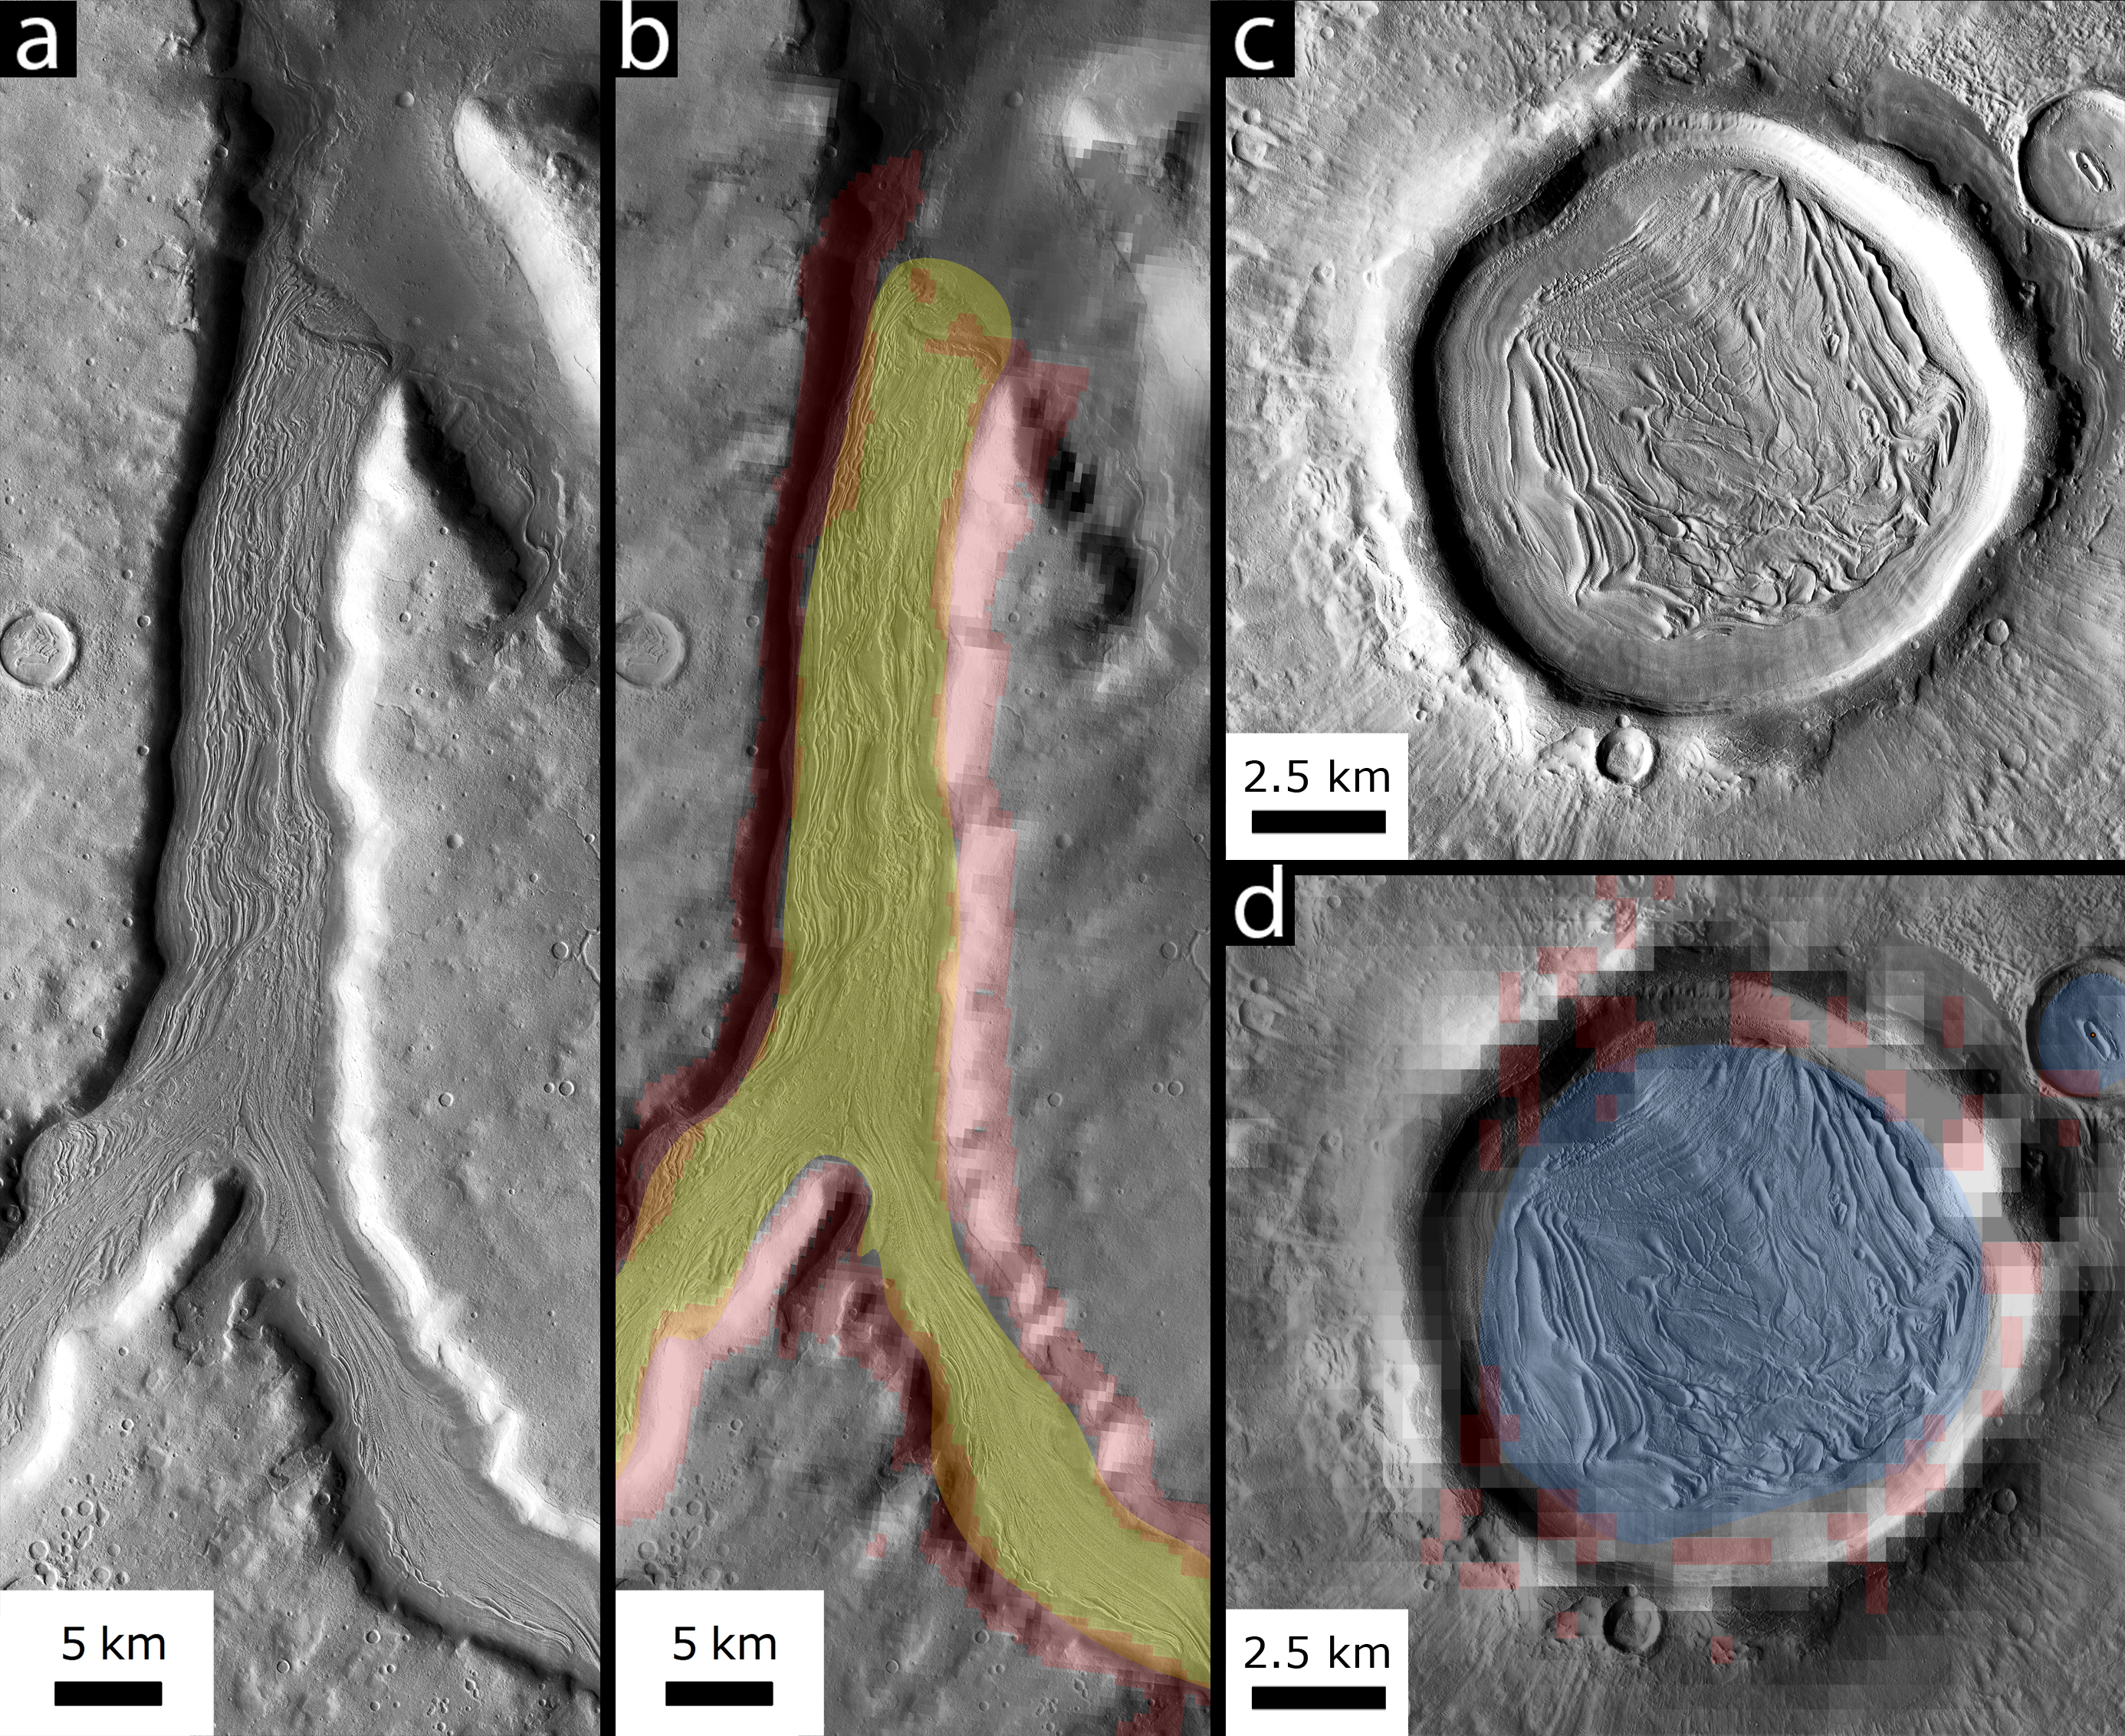 Diagrams showing the erodable area on Mars.